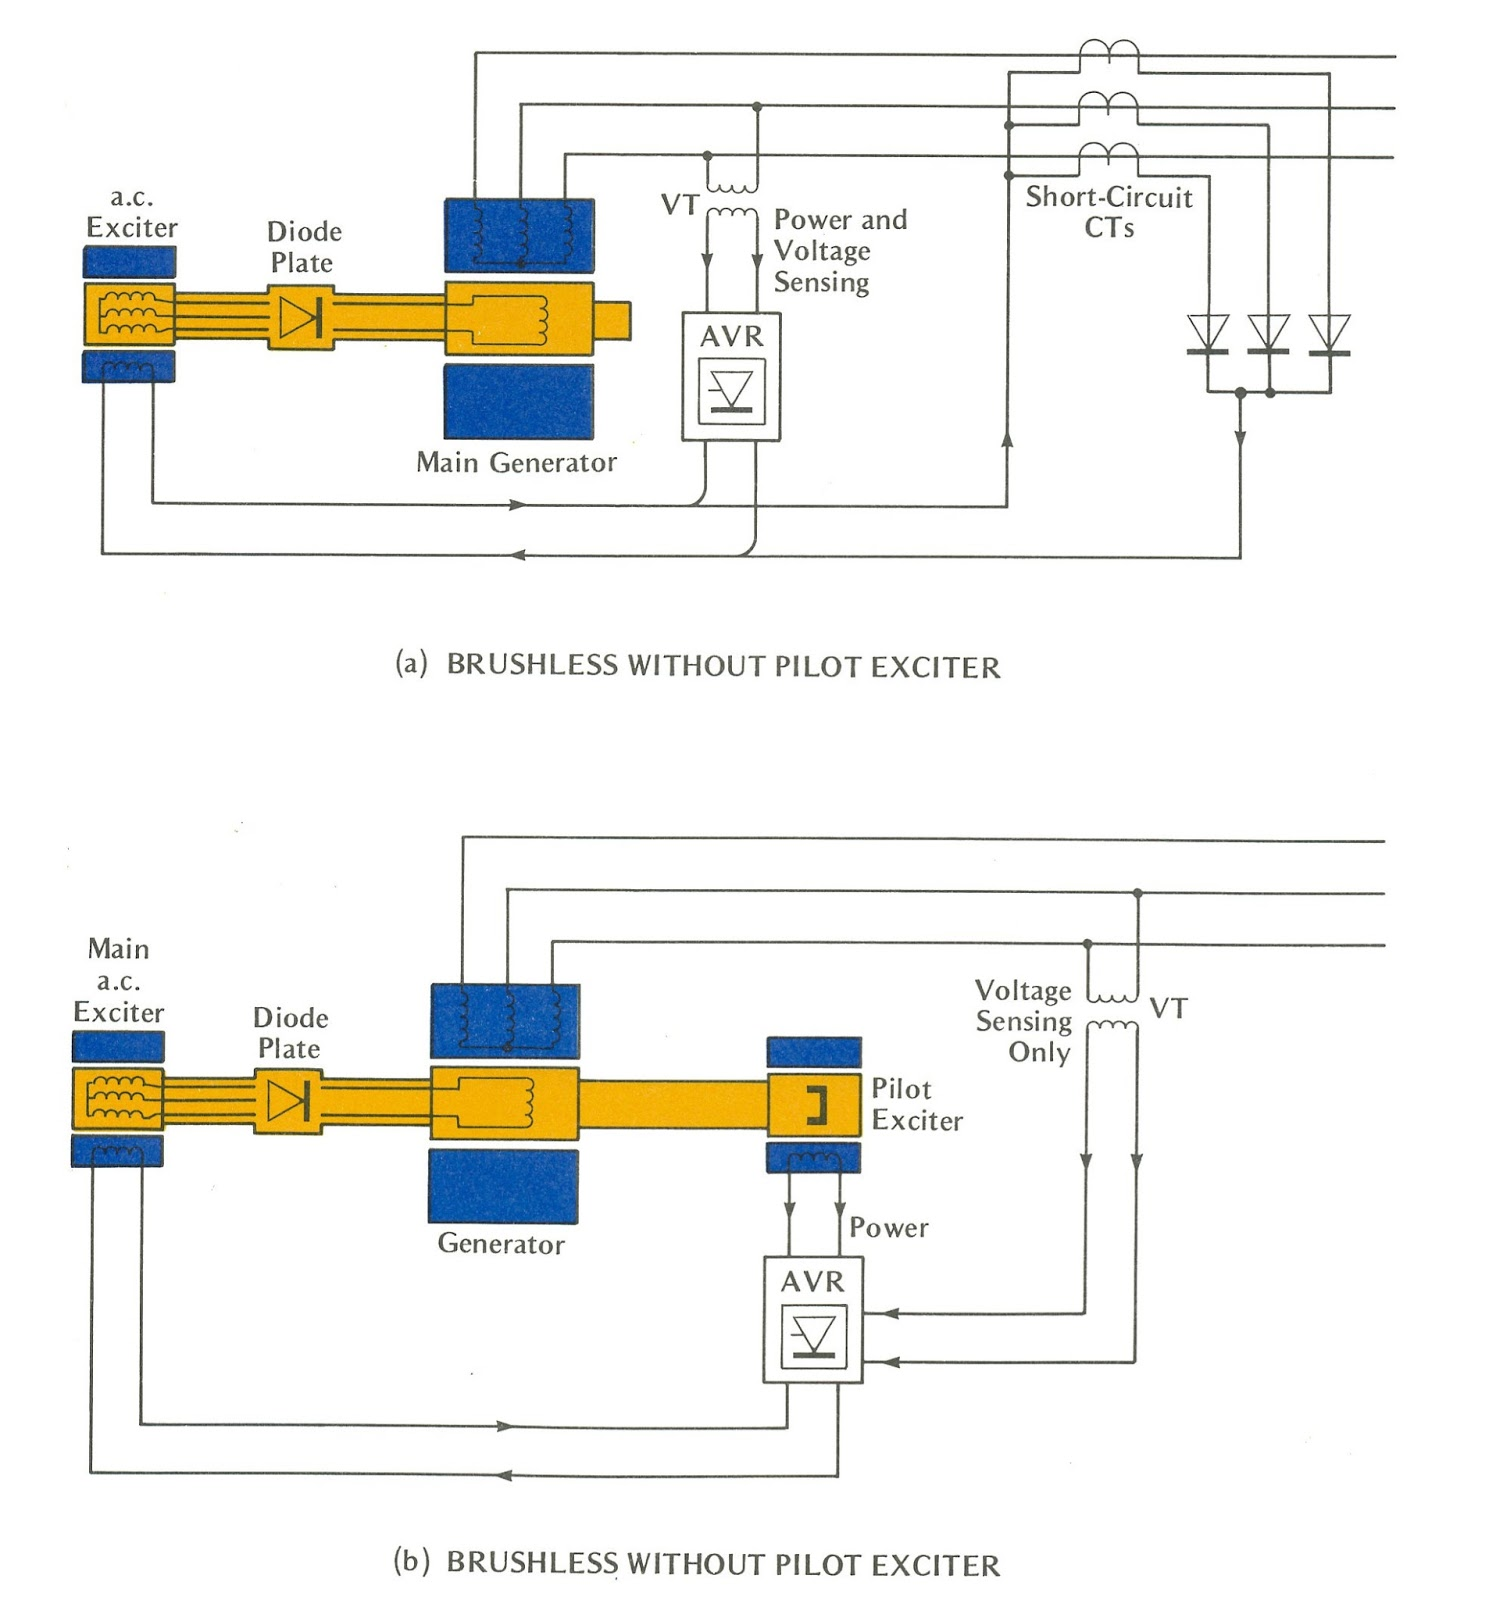 engineering photos videos and articels engineering search engine rh emadrlc  blogspot com generator avr circuit diagram pdf